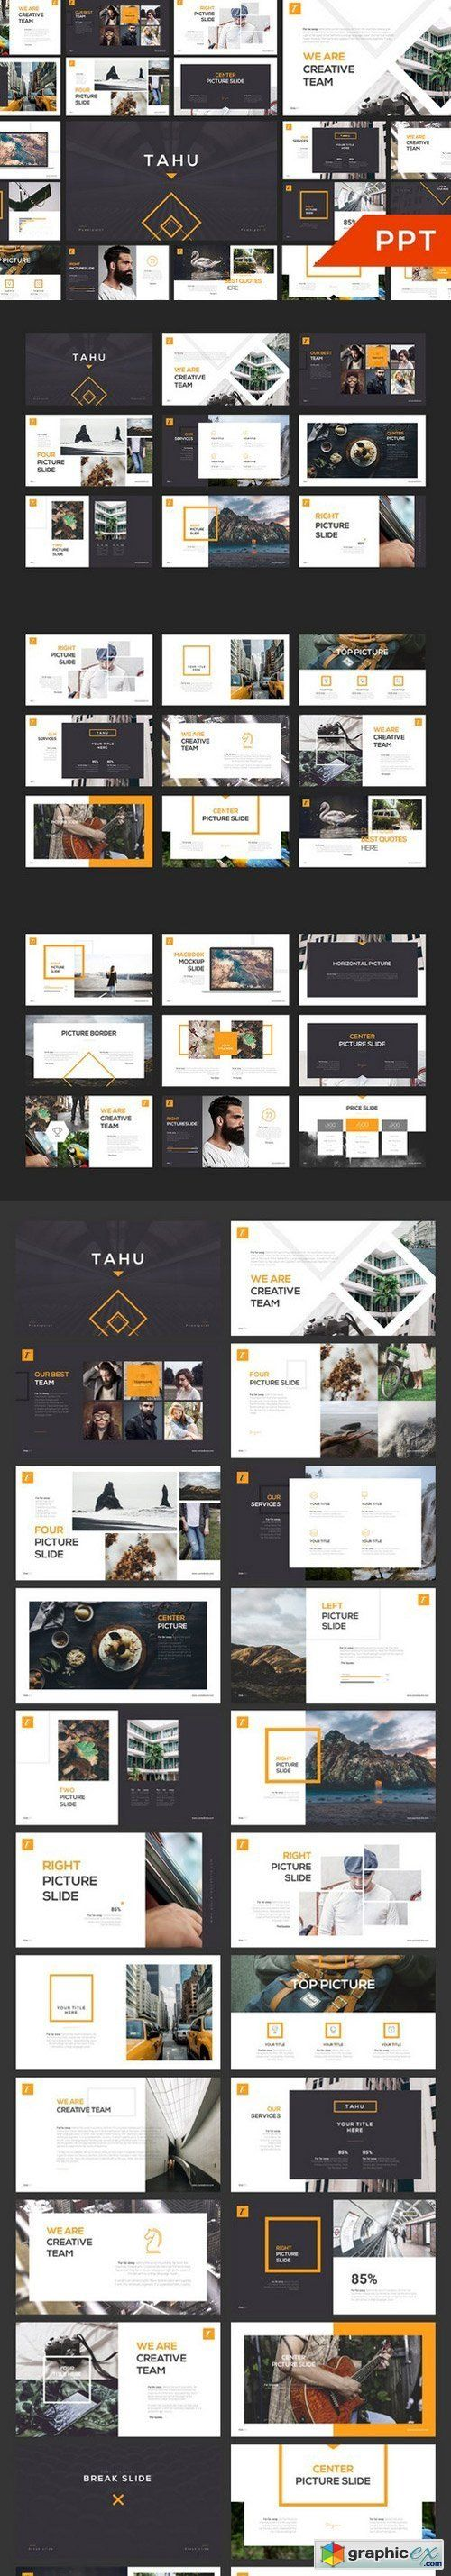 Tahu powerpoint template powerpoint template pinterest tahu powerpoint template 720863 this is an unique presentation template for commercial enterprise or personal use one of creative industry business toneelgroepblik Choice Image